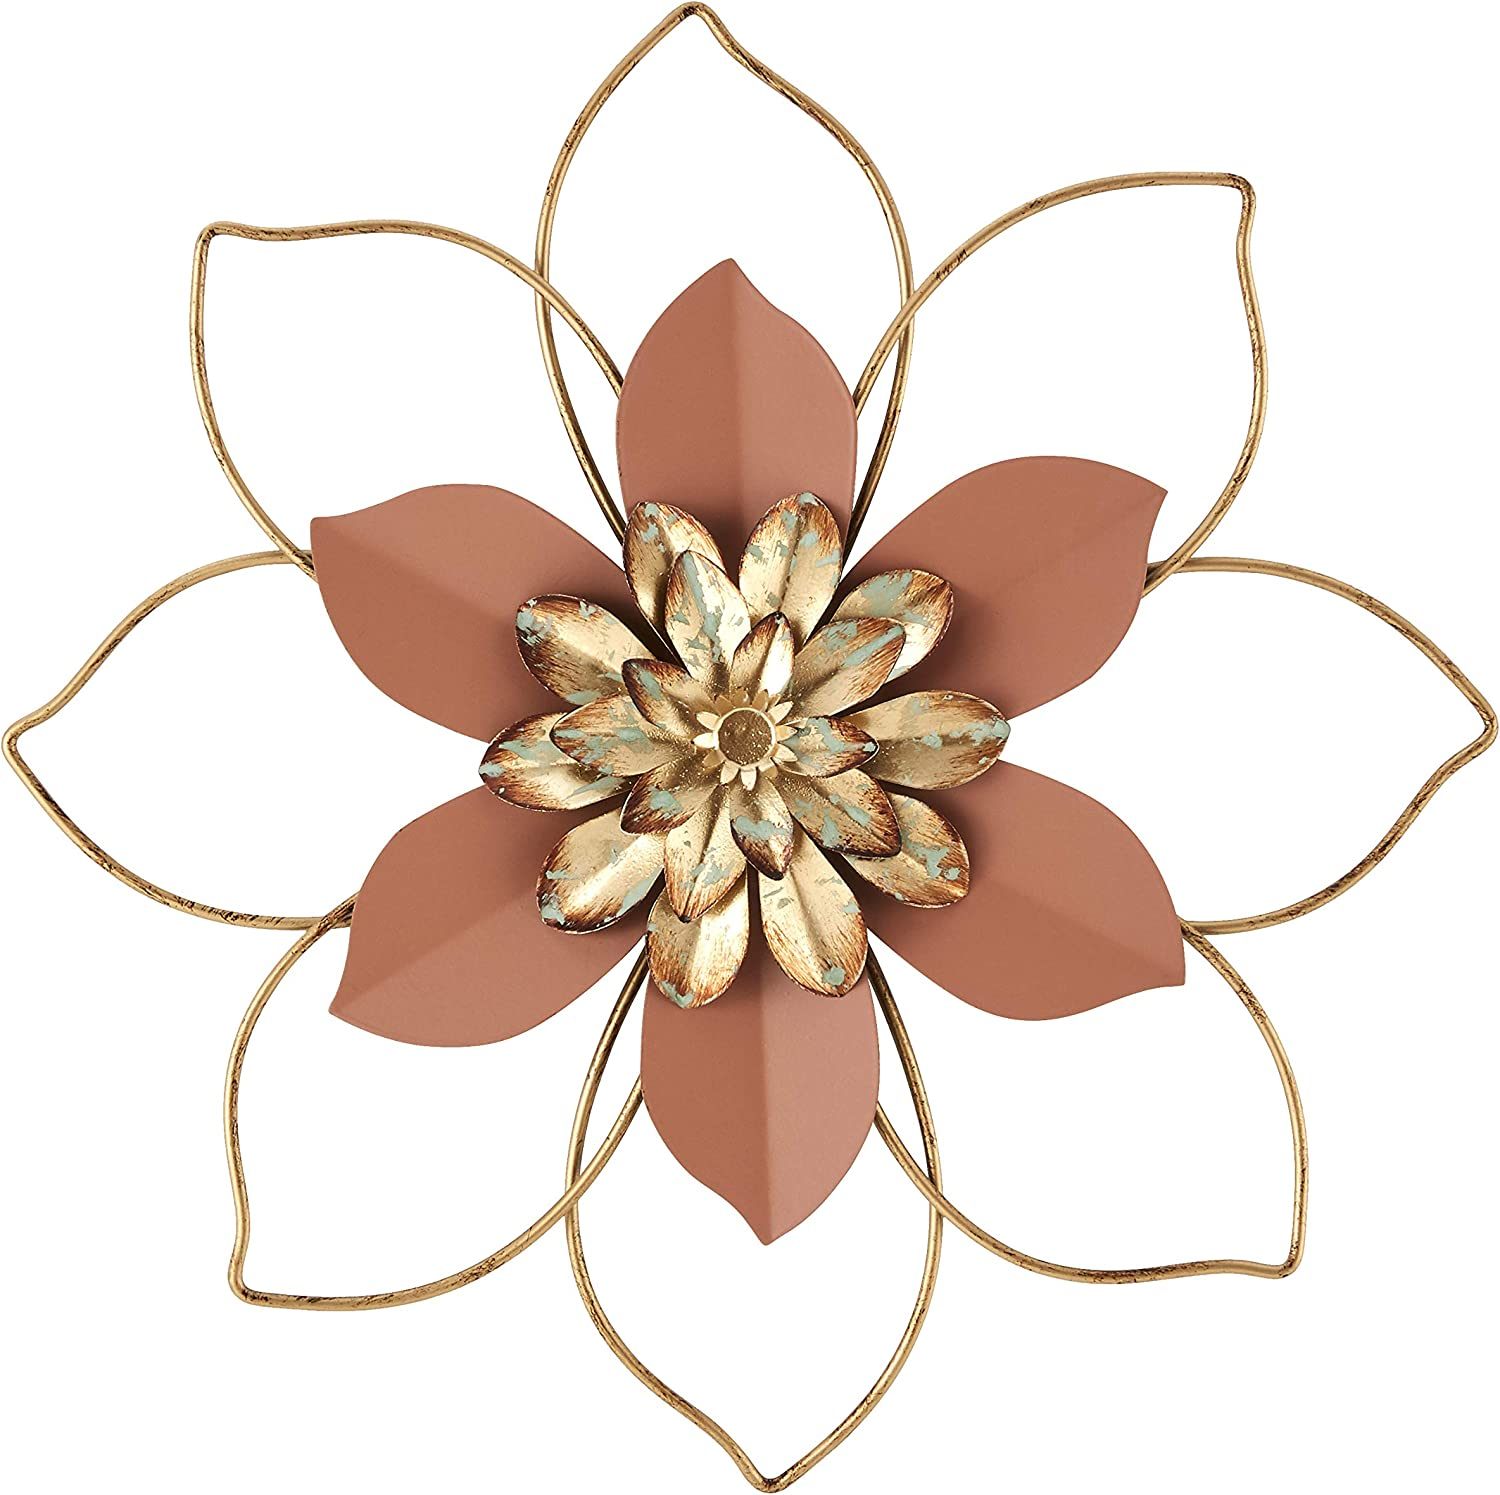 H HOMEBROAD. Metal Flower Wall Decor Hanging Decorations Outdoor Wall Sculptures for Home Bedroom Bathroom Kitchen Garden, Coral, 12inch